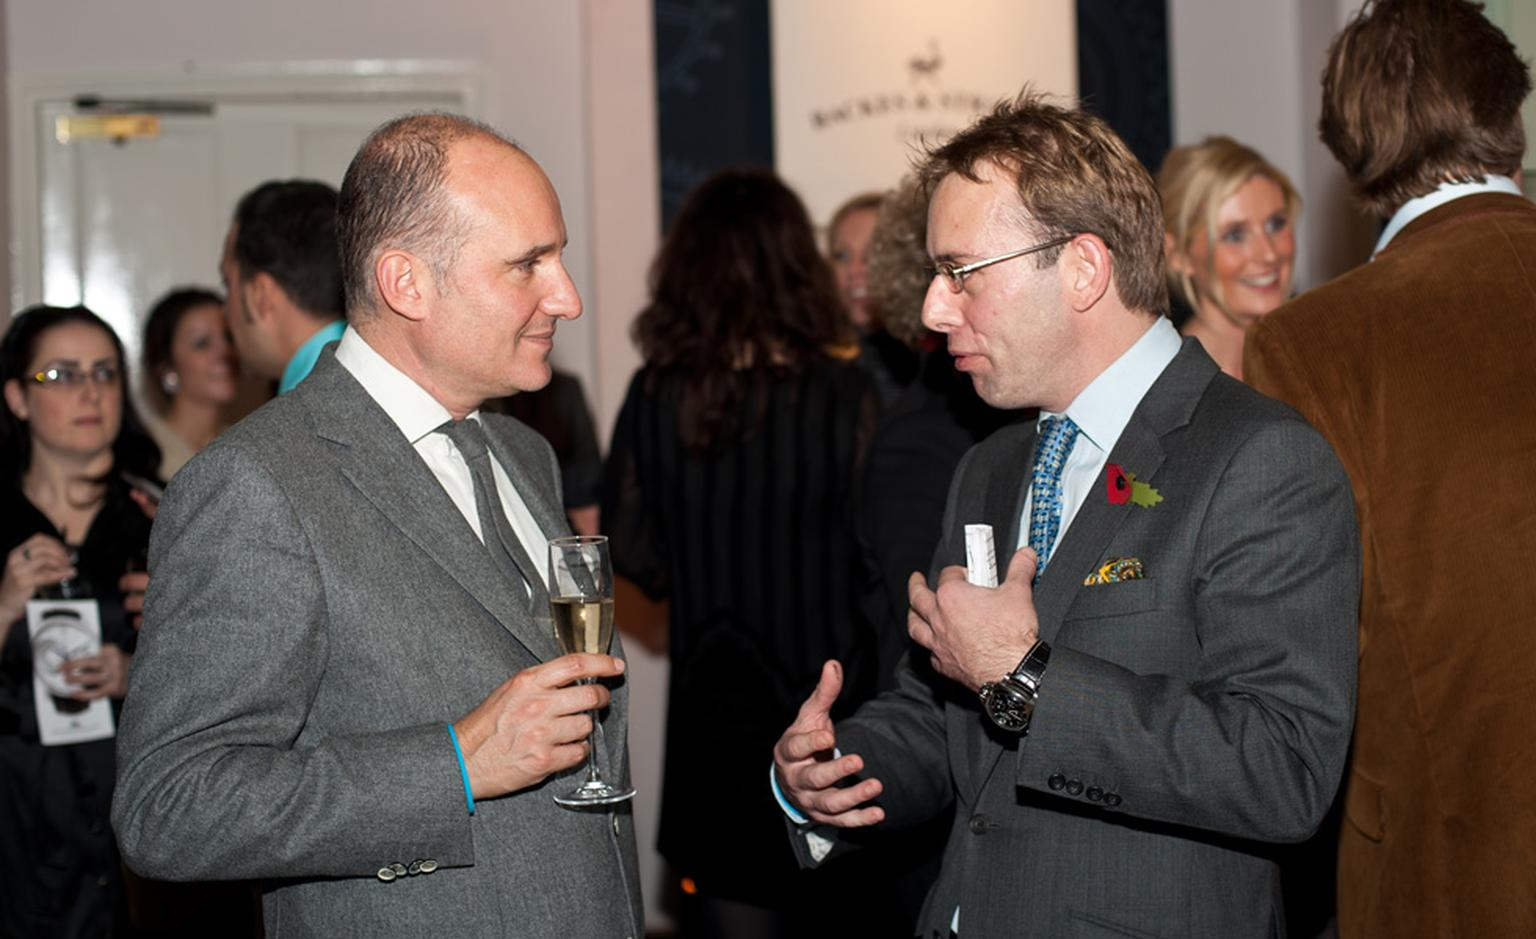 Salon QP 2010 with James Gurney (right), the man behind UK's only watch show.